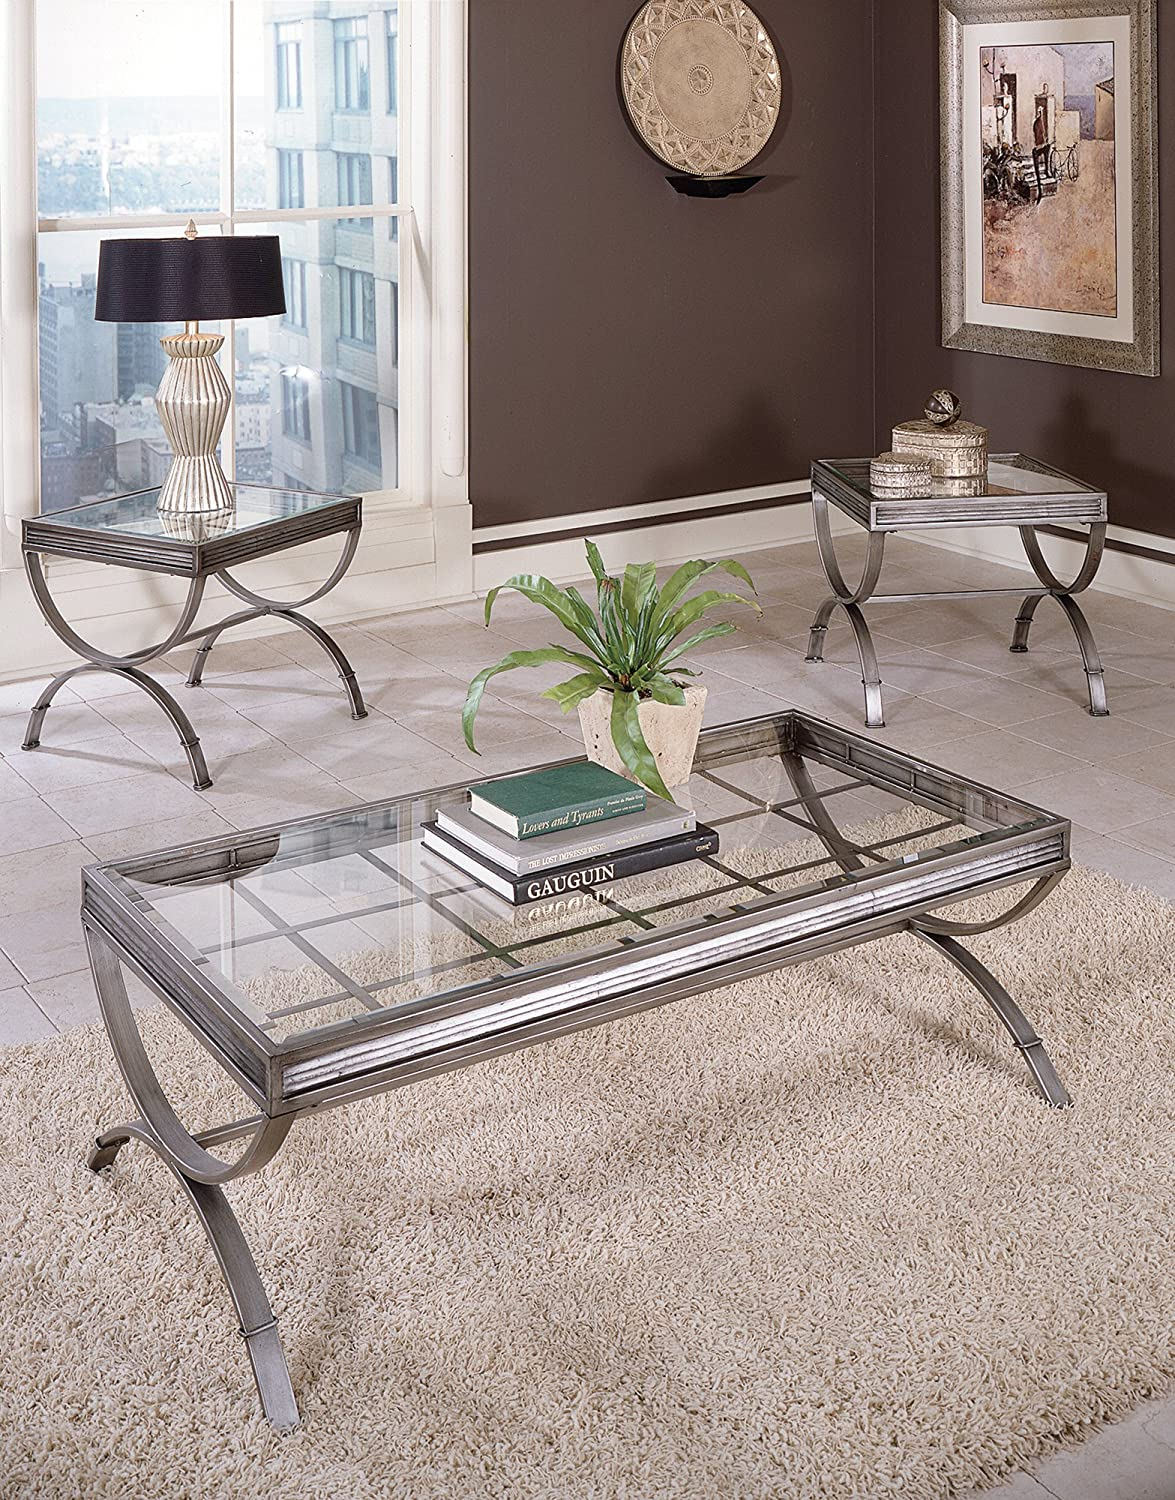 & Amazon.com: Emerson Set of 3 Tables Brushed Nickel: Kitchen u0026 Dining